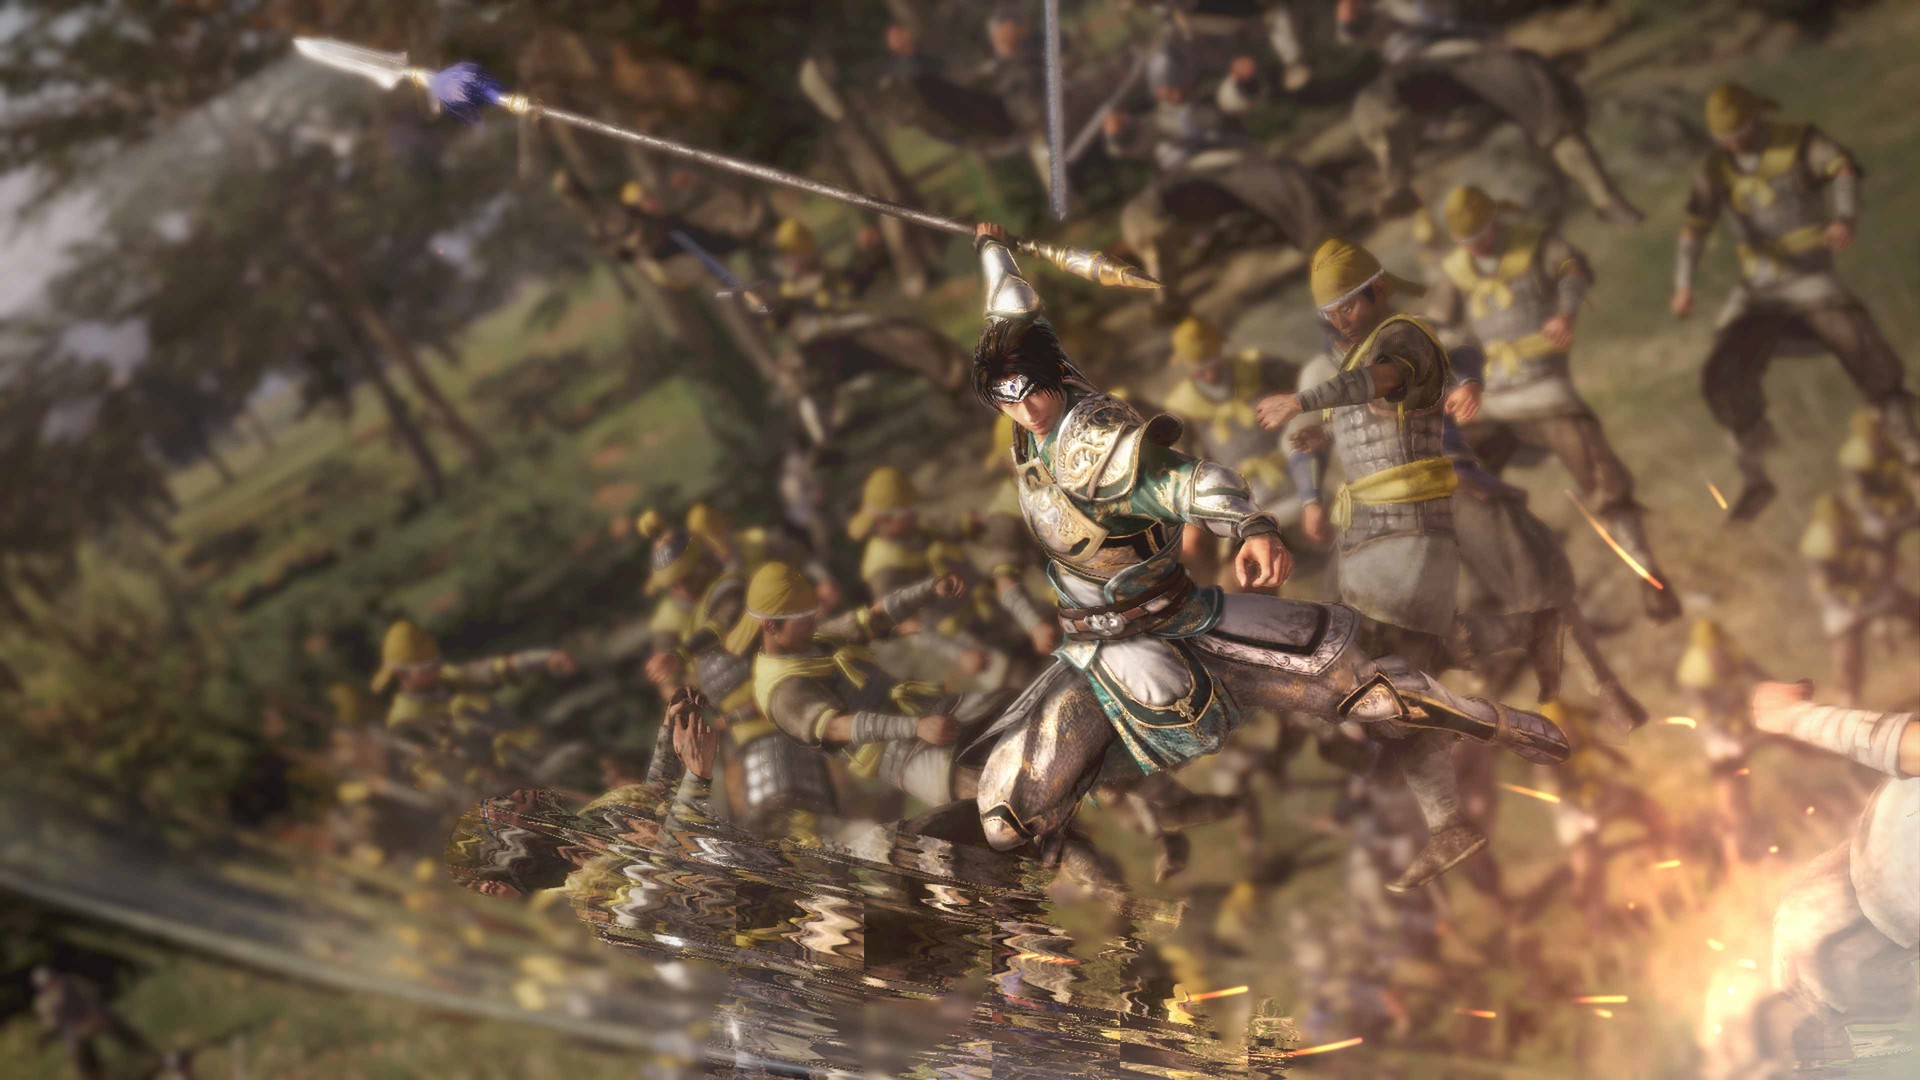 DYNASTY WARRIORS 9,WARRIORS,DYNASTY,CODEX,games,advnture,action,rpg,العاب,كاملة,اكشن,مغامرة,فانتازيا